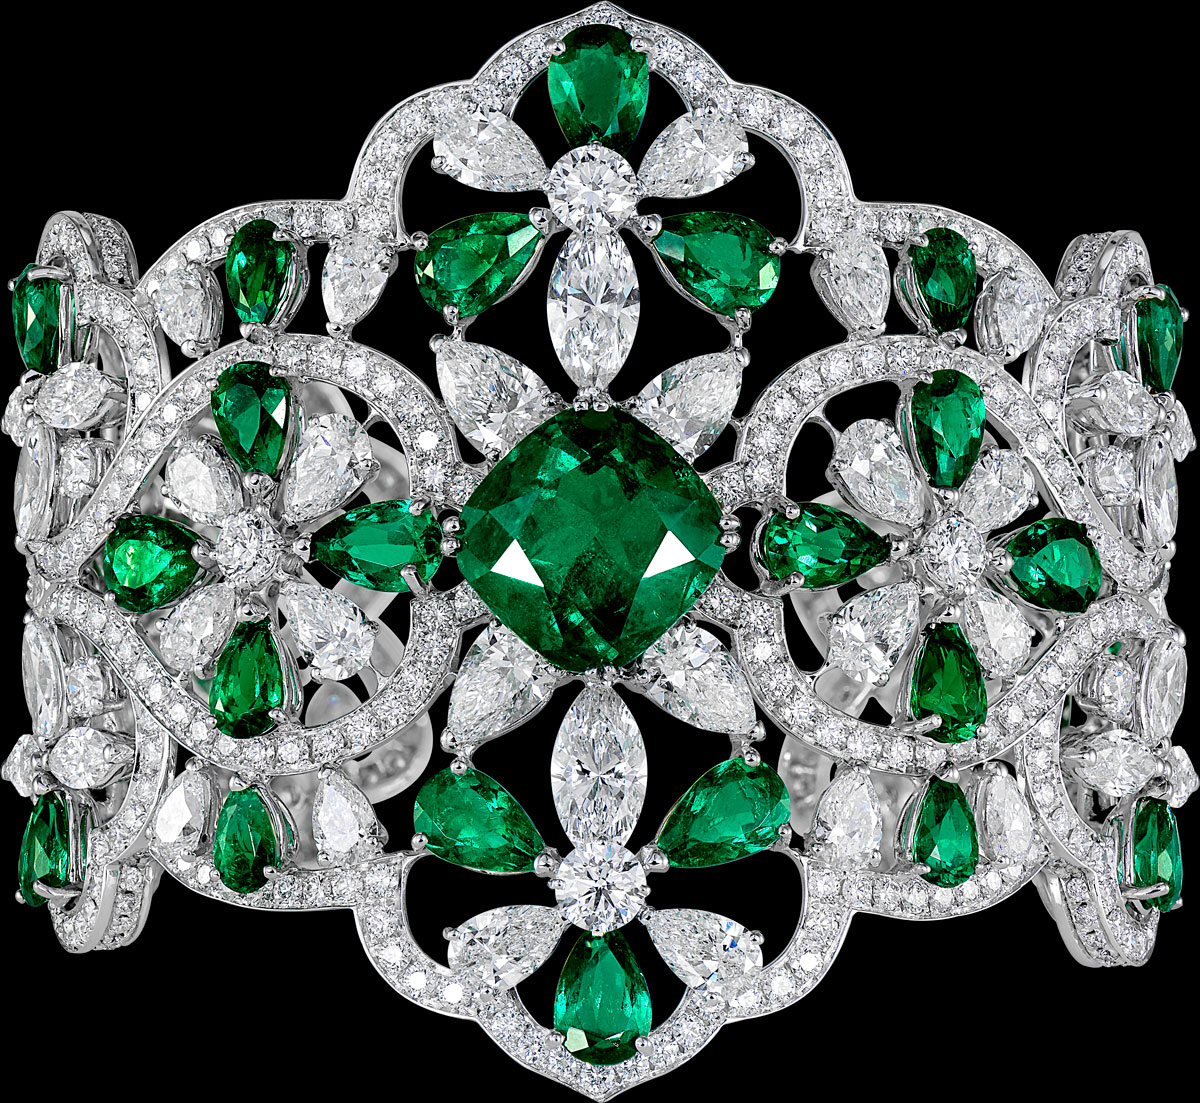 Colombian emerald and diamond bracelet by Orlov Jewelry